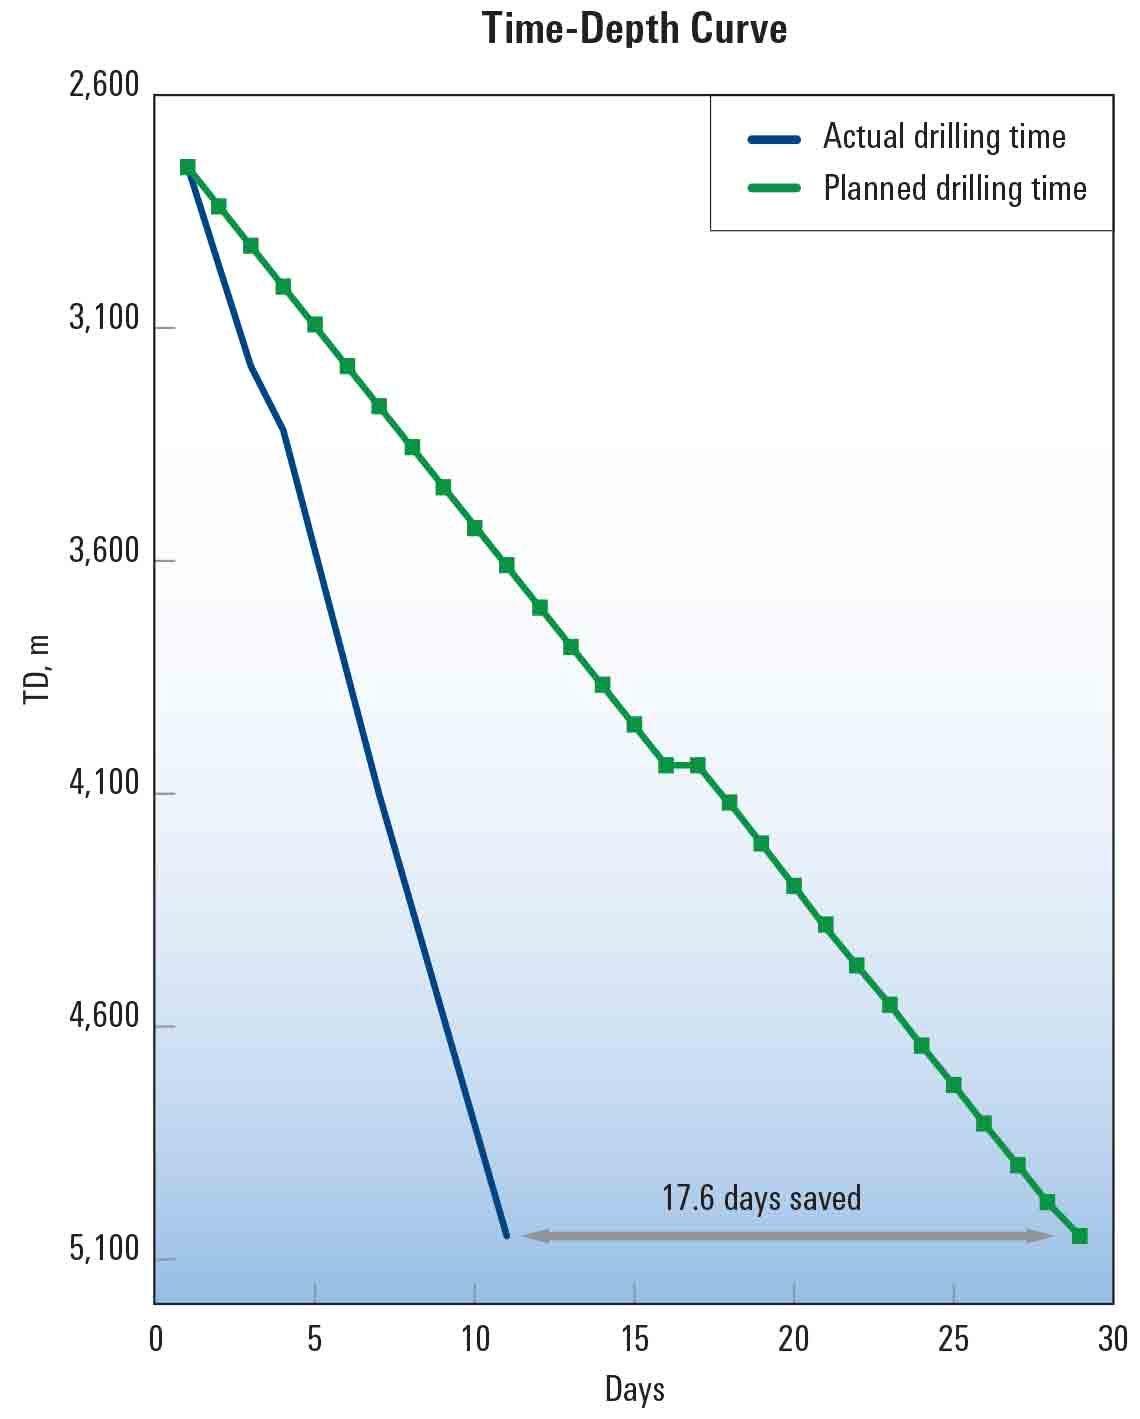 Schlumberger BHA decreased drilling time.